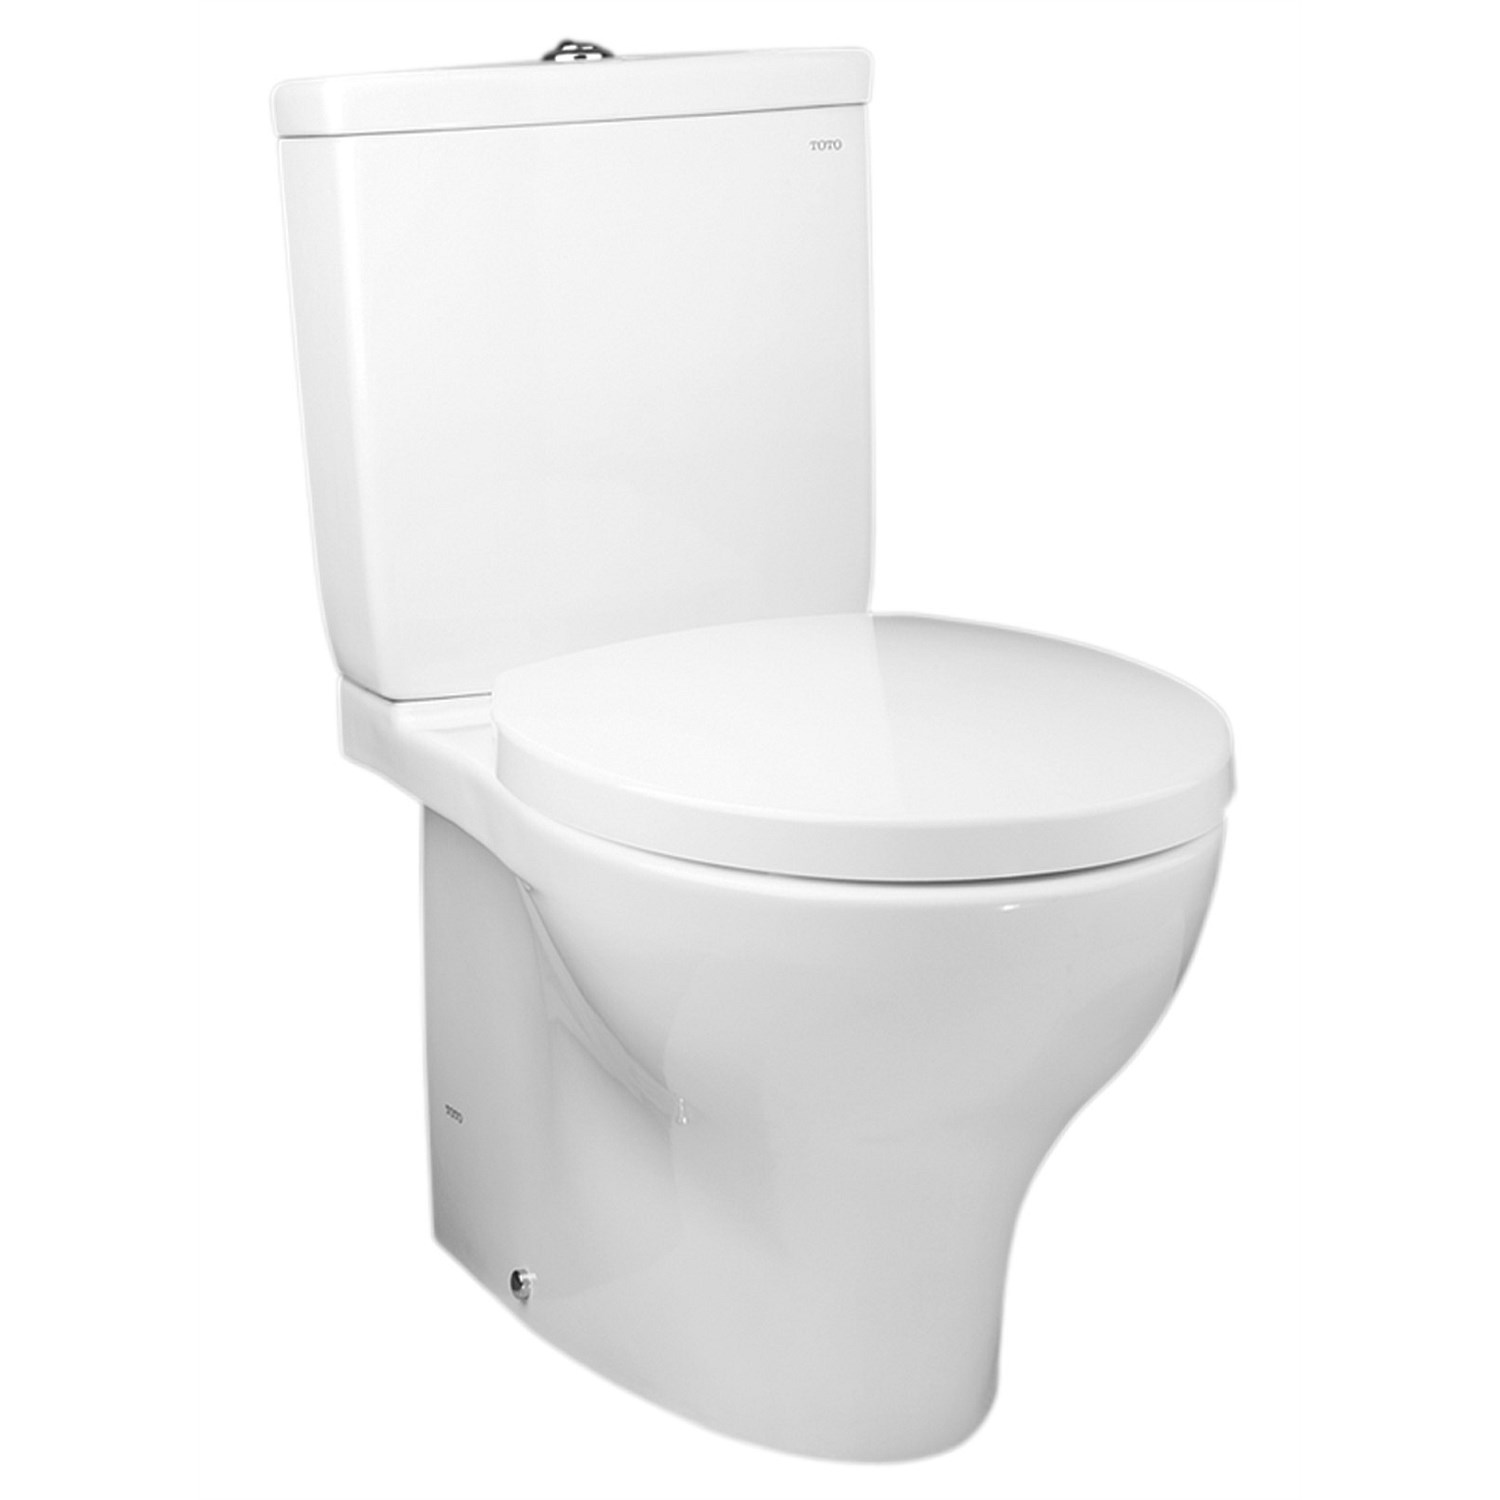 Toilet Suites | Plumbing World - Toto Santo Back-To-Wall Toilet Suite